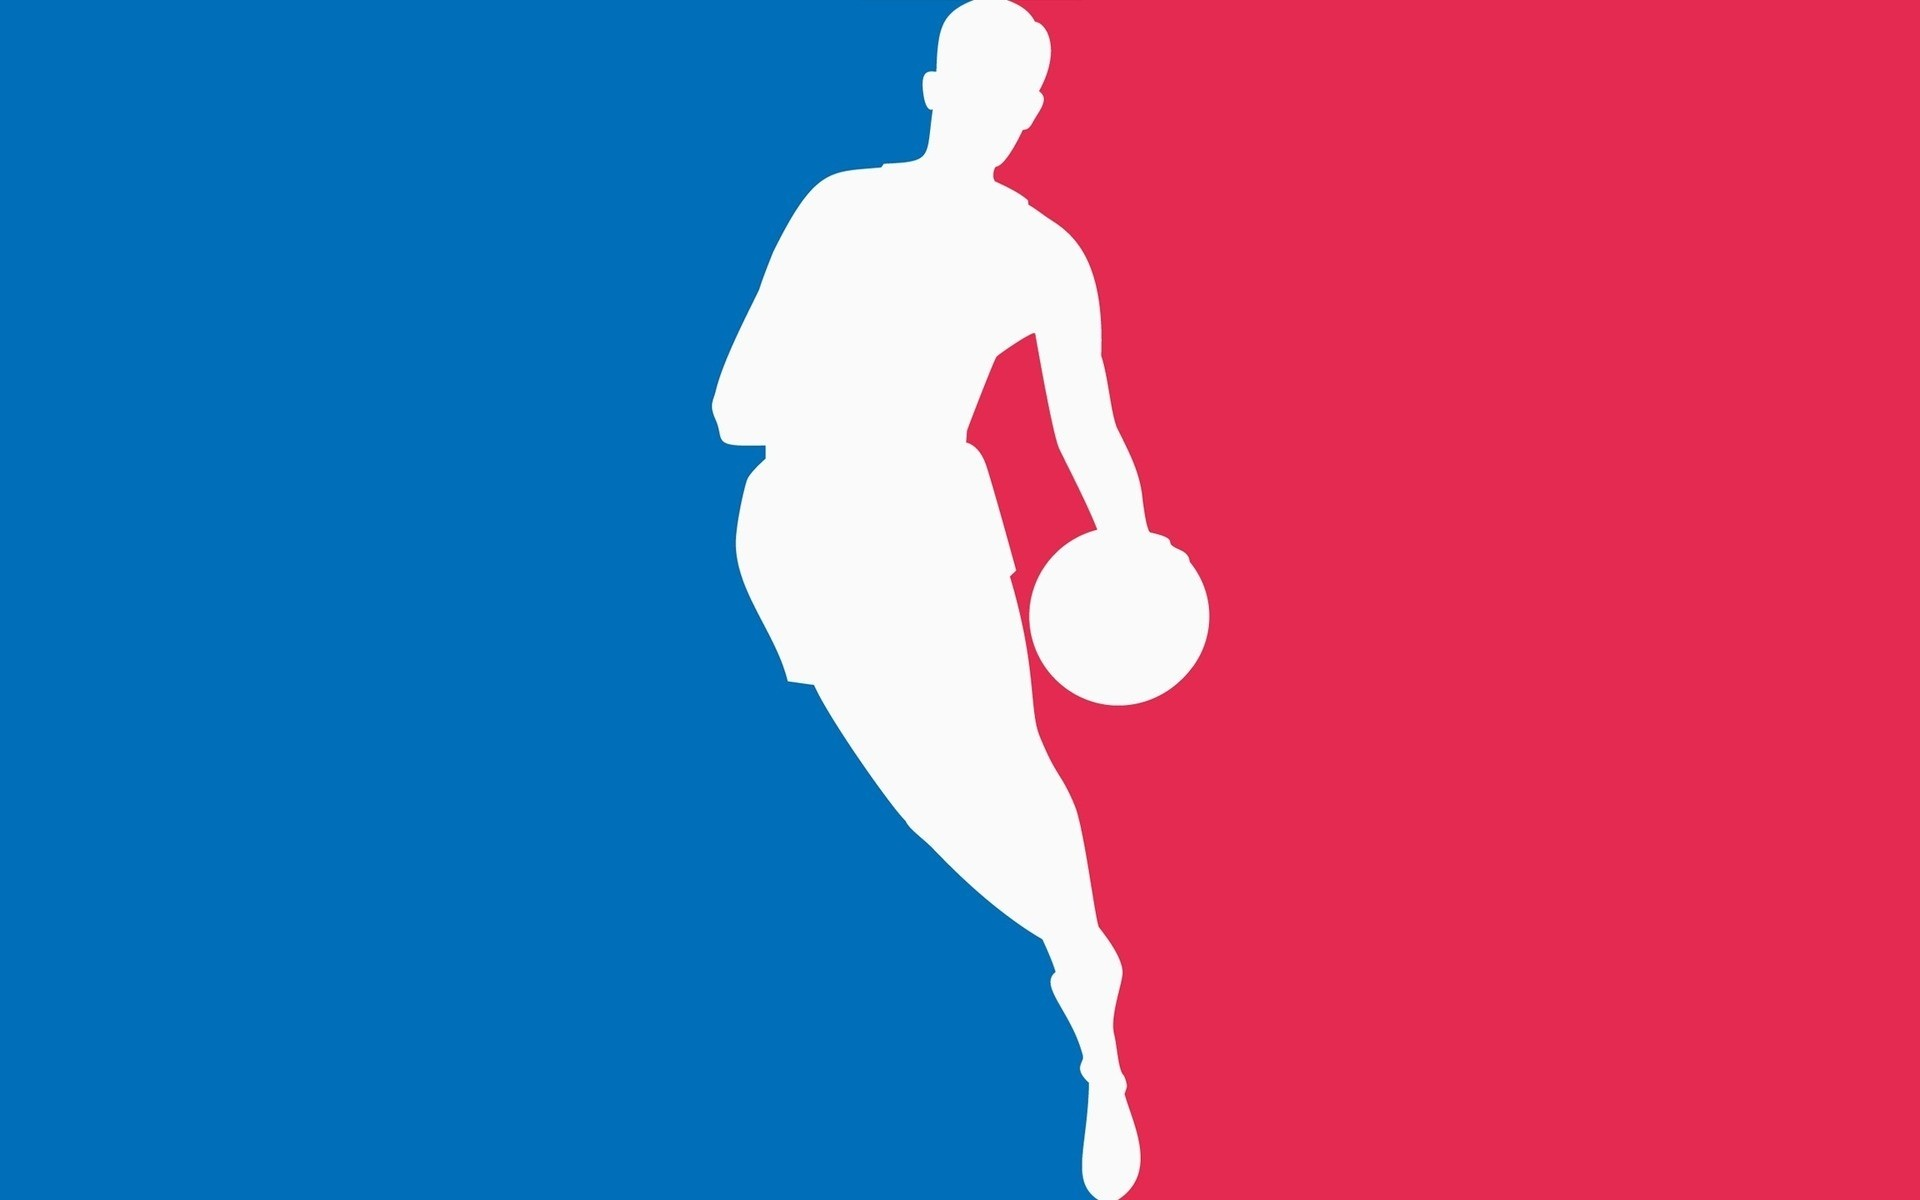 Cool NBA Logo Android Wallpapers For Free